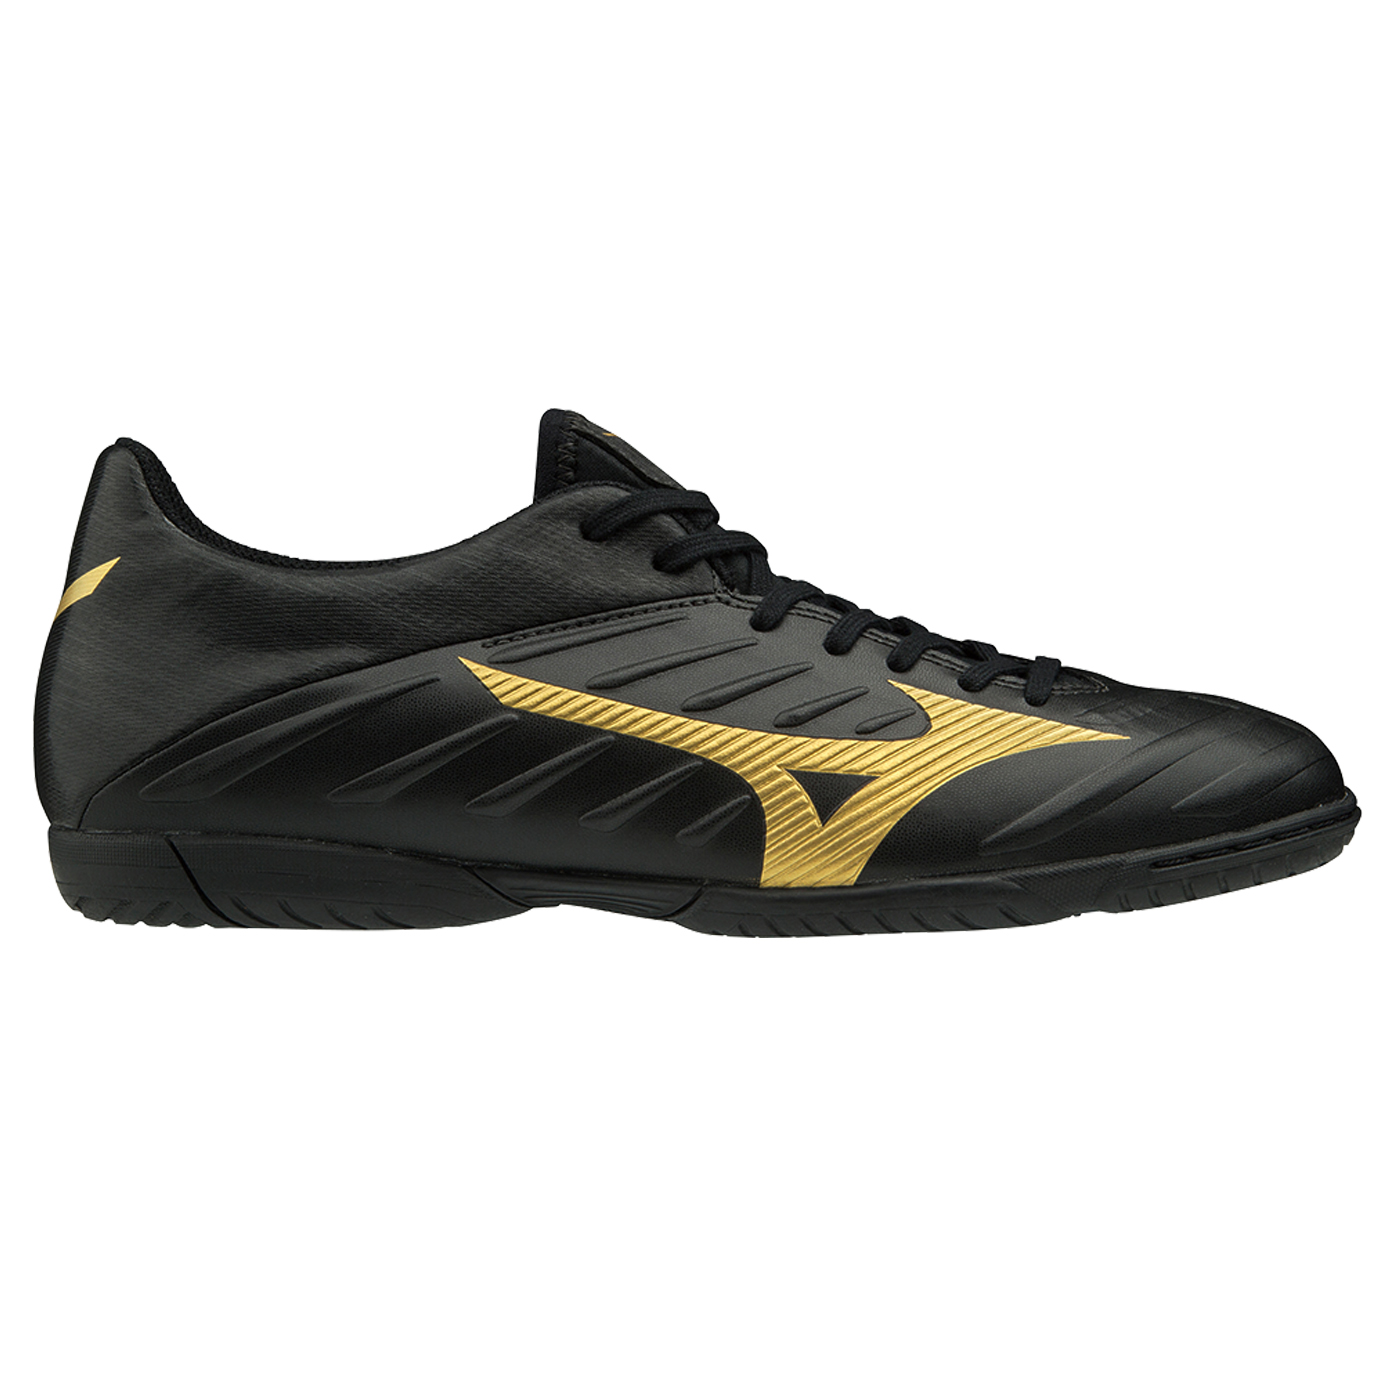 REBULA 2 V3 IN - BLACK/ GOLD